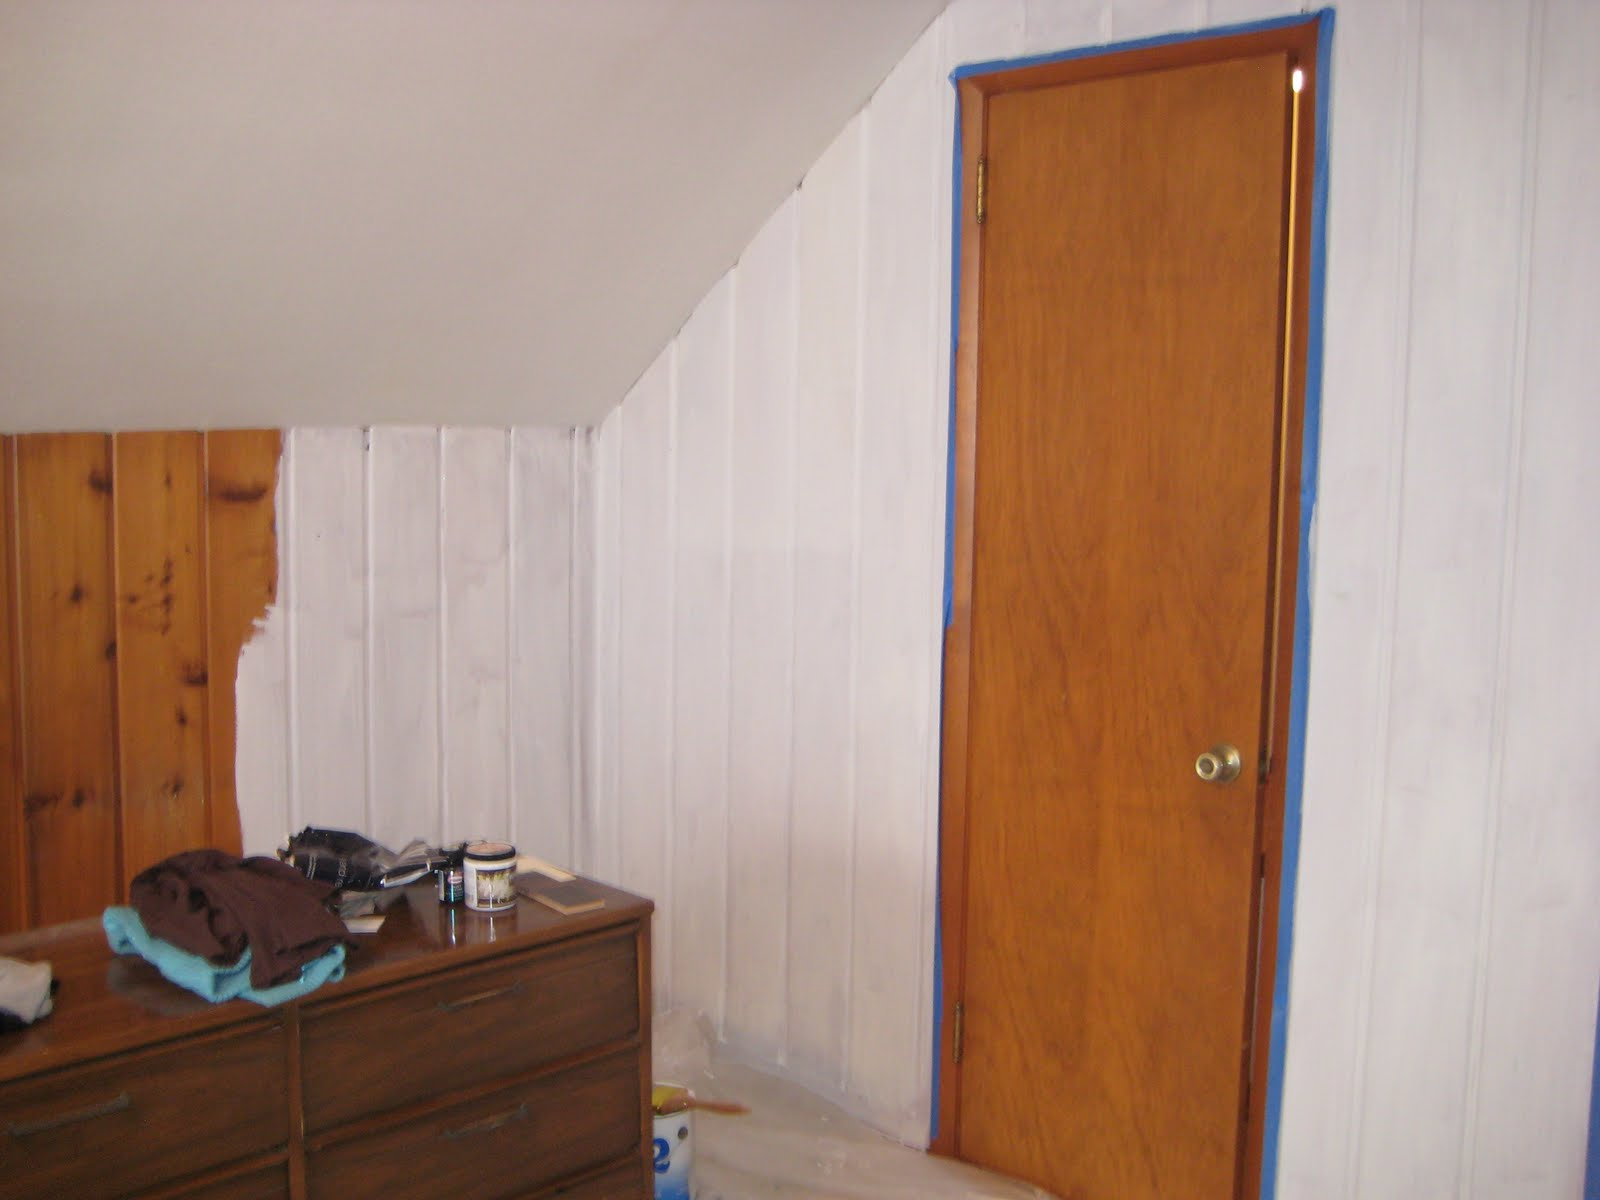 Painting Bedroom Furniture Before And After Remodelaholic Painting Over Knotty Pine Paneling Complete